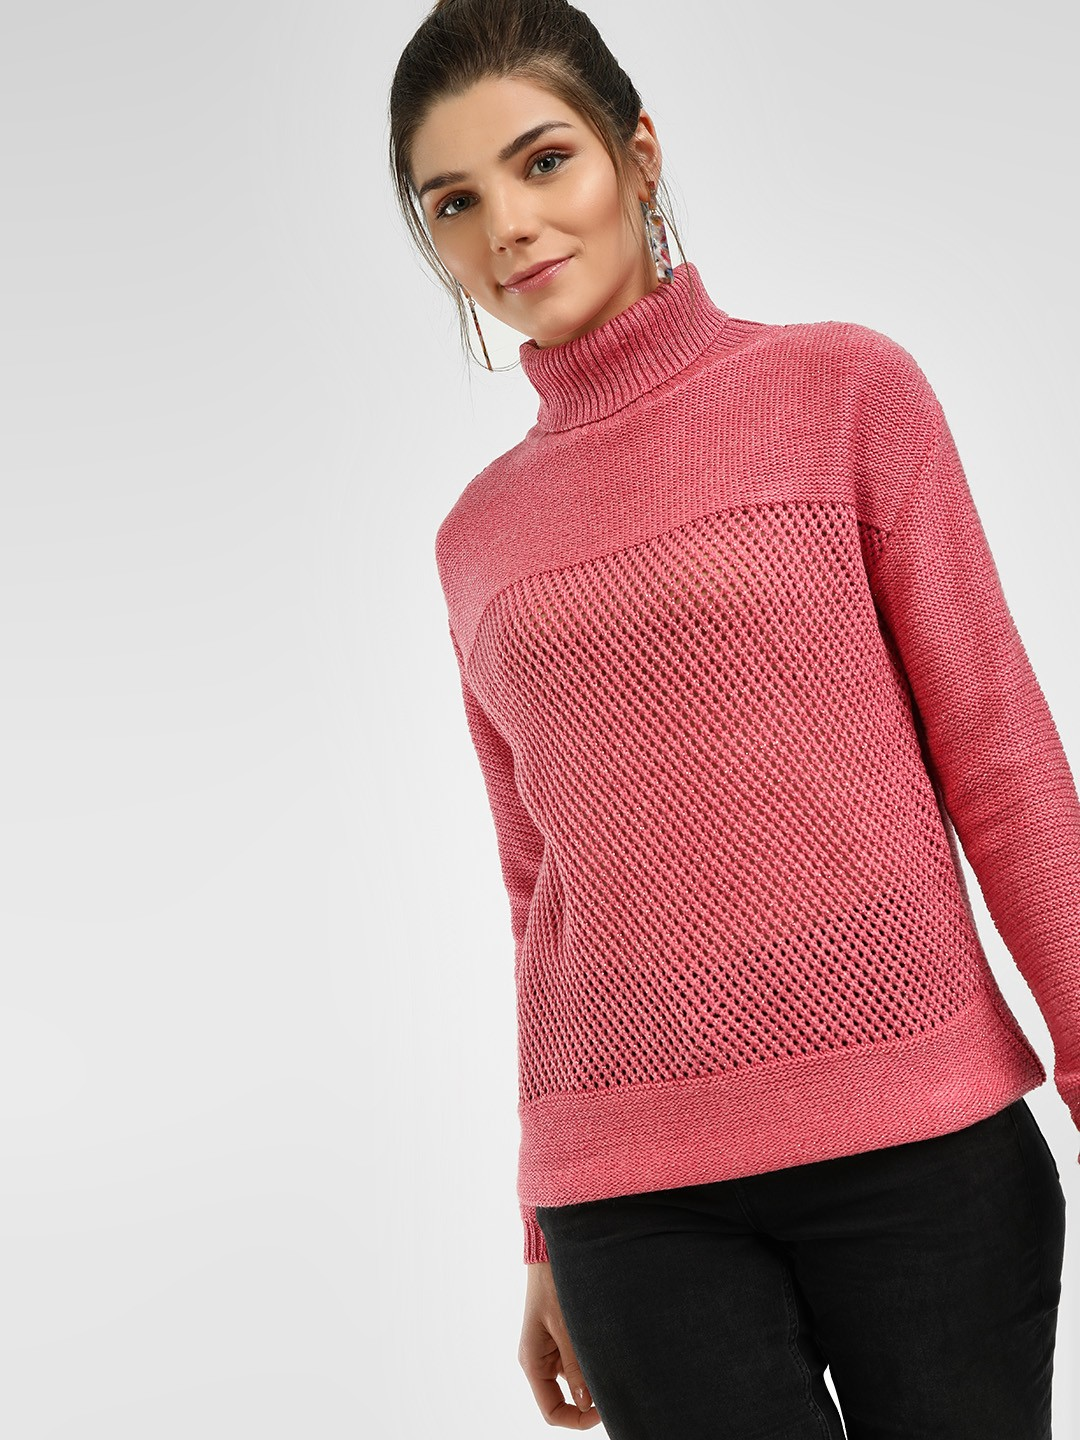 HEY Pink Turtle Neck Woven Pullover 1